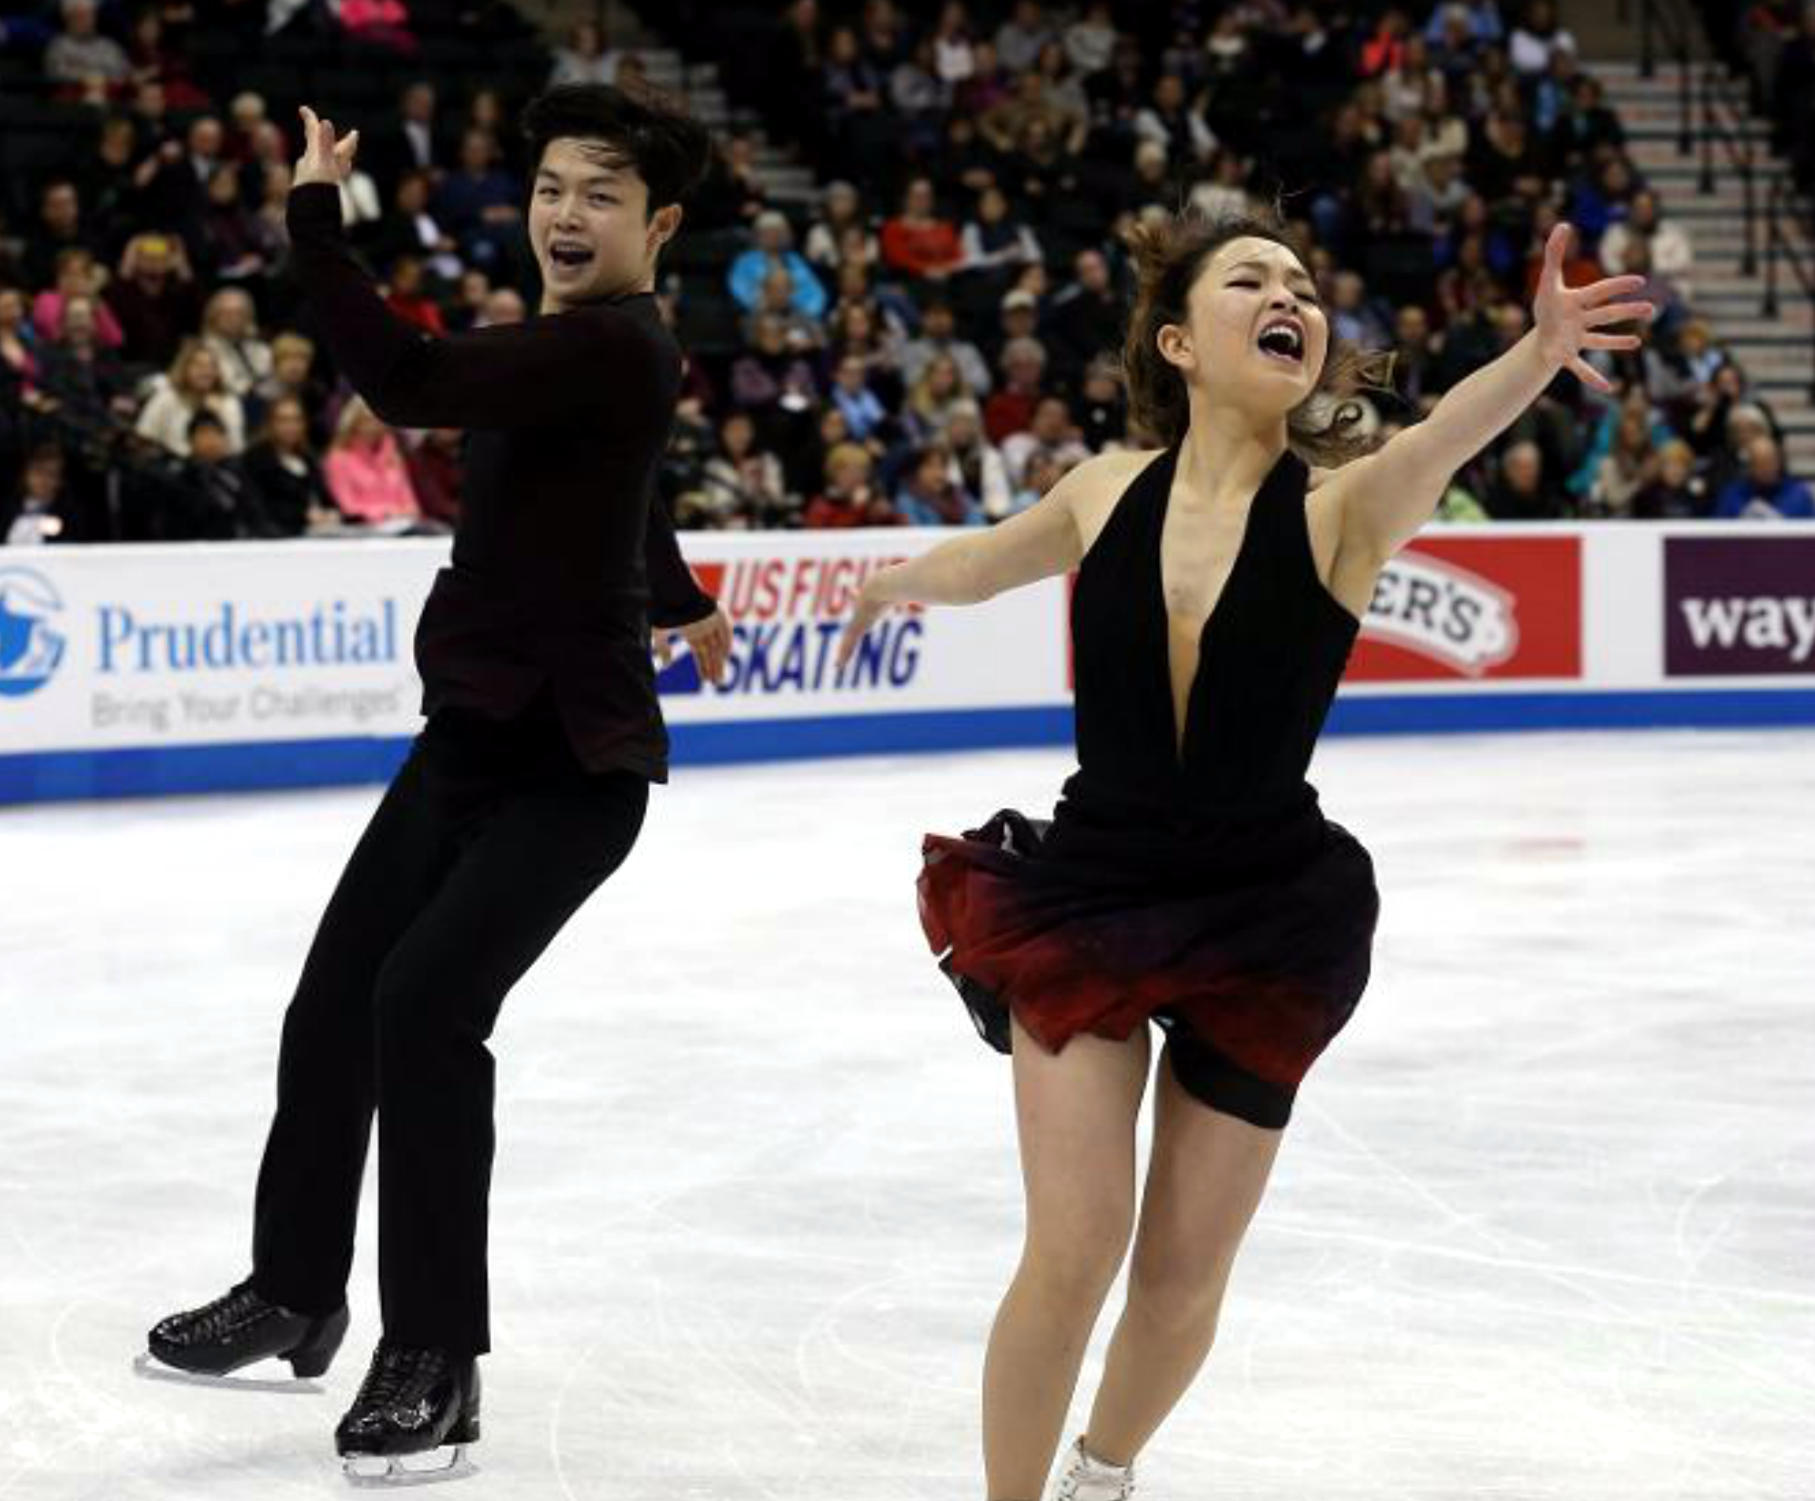 Maia and Alex Shibutani are the 2016 U.S. national champions, 2011 World bronze medalists, three-time U.S. national silver medalists (2015, 2012, 2011), two-time U.S. national bronze medalists (2013-14), 2015 and 2011 NHK Trophy champions, 2015 Skate Canada and 2011 Four Continents silver medalists, 2009 World Junior silver medalists, 2014 Ondrej Nepela Trophy champions, 2010 U.S. Junior national champions and members of the 2014 US Winter Olympics team.